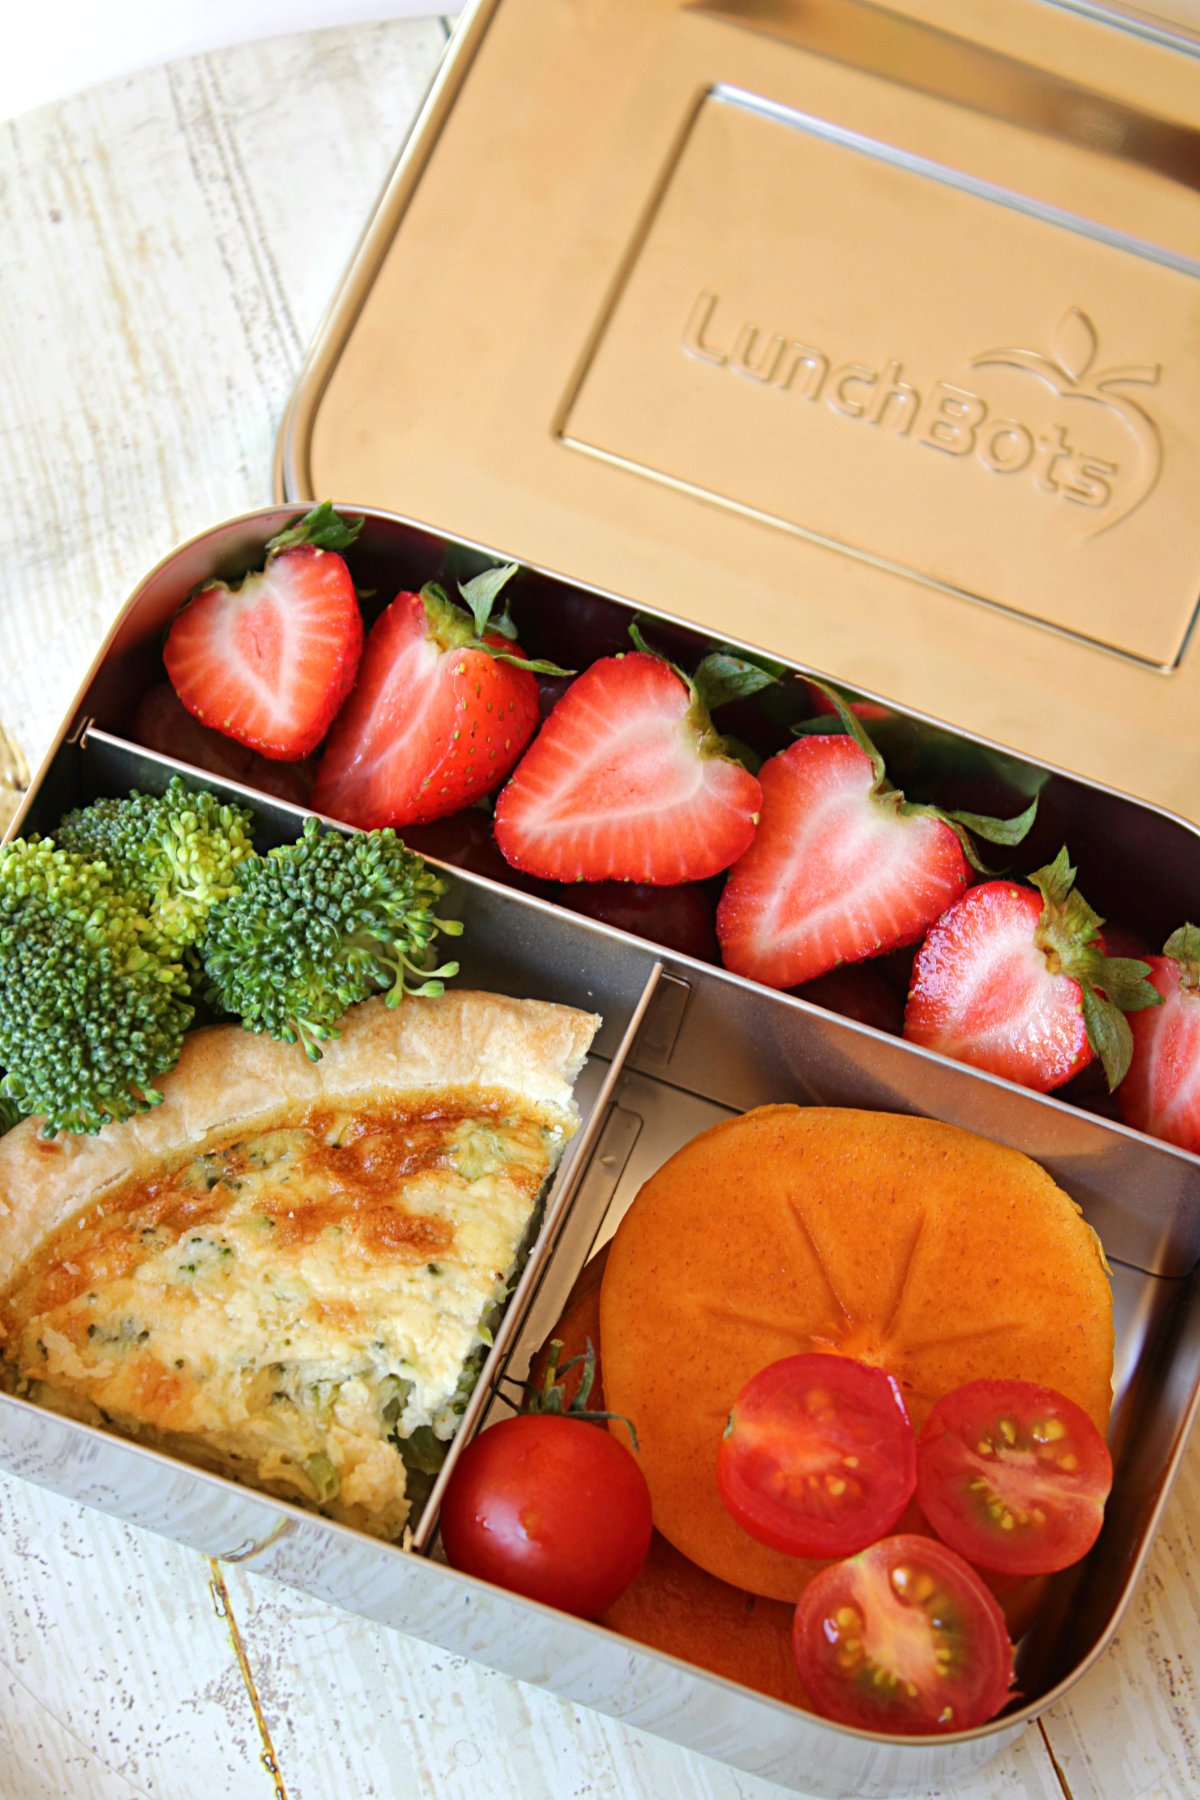 Kids Bento Box Lunch Ideas: Quiche, grapes, strawberries, persimmon, broccoli, cherry tomato